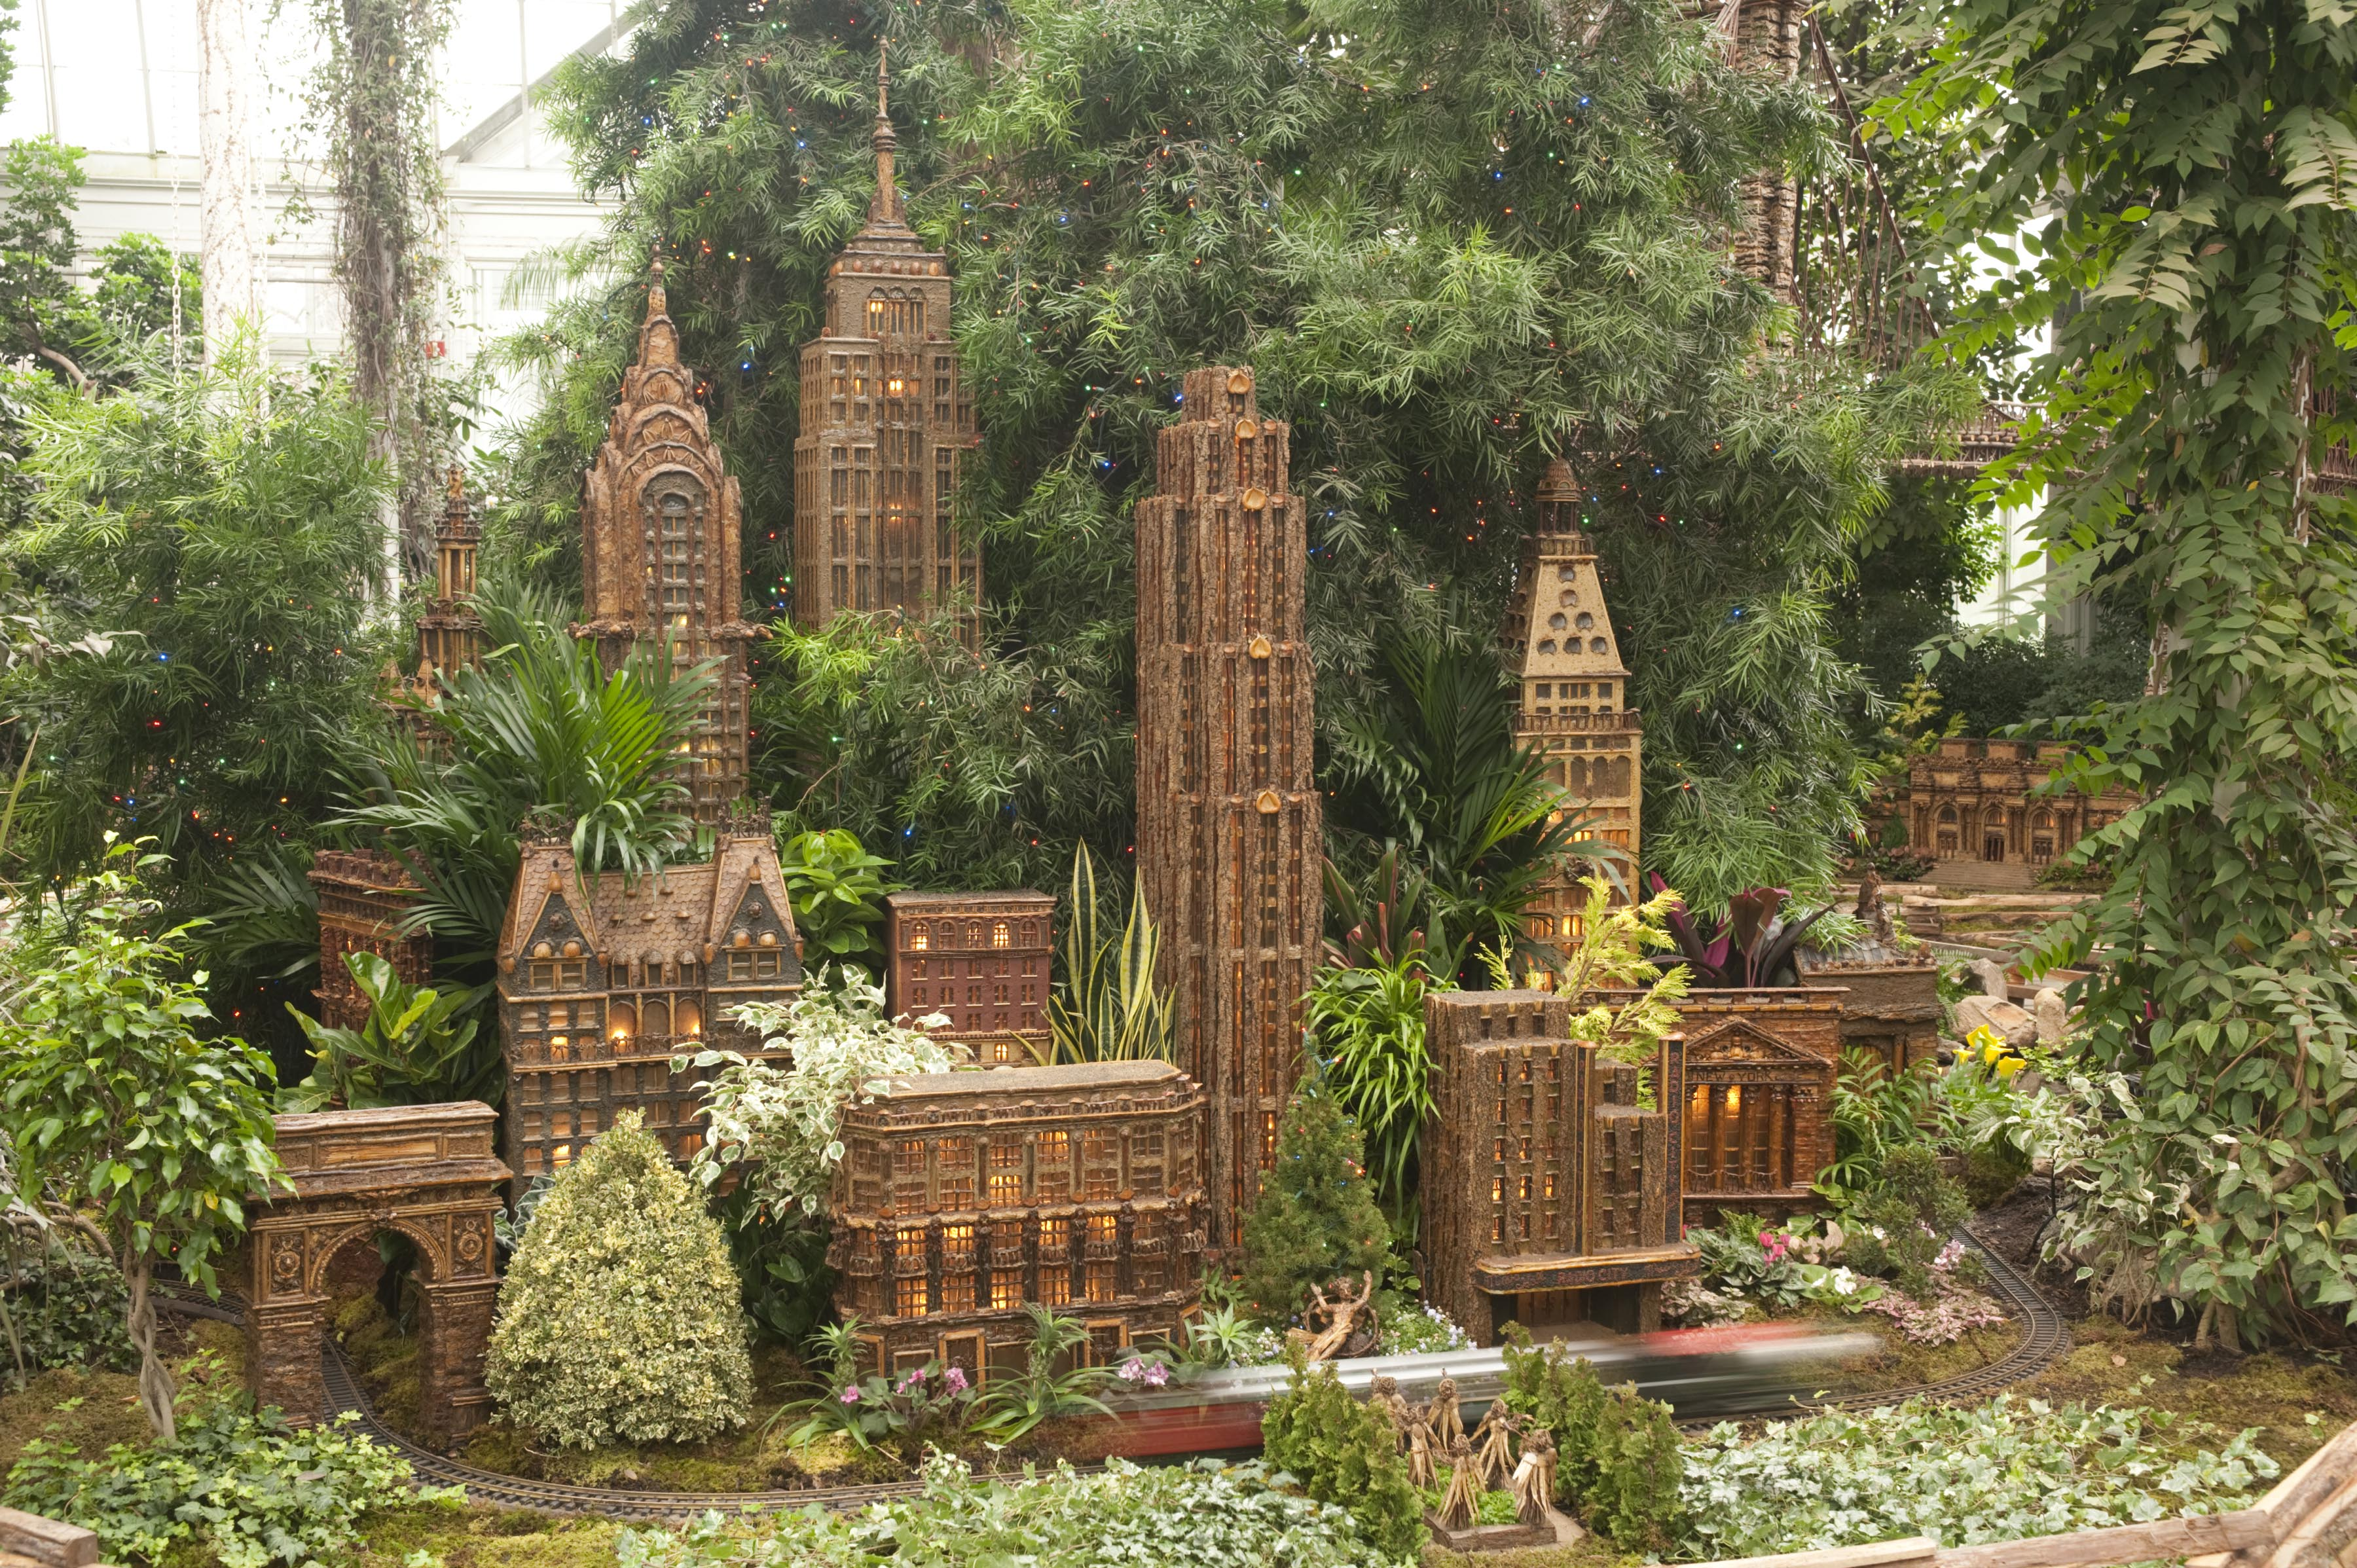 2011 Holiday Train Show at the New York Botanical Garden. Photo Credit: Ivo M. Vermeulen. Photo Courtesy: The New York Botanical Garden.